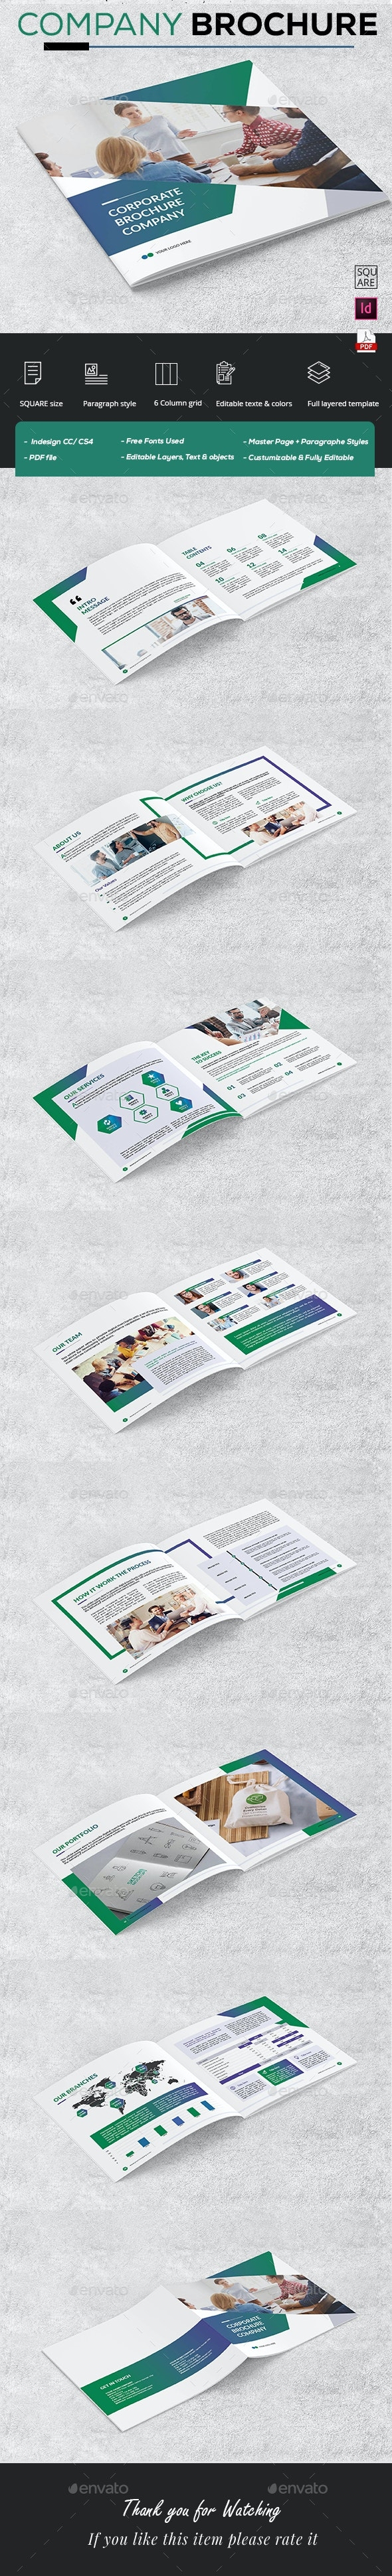 Company Brochure Square - Corporate Brochures